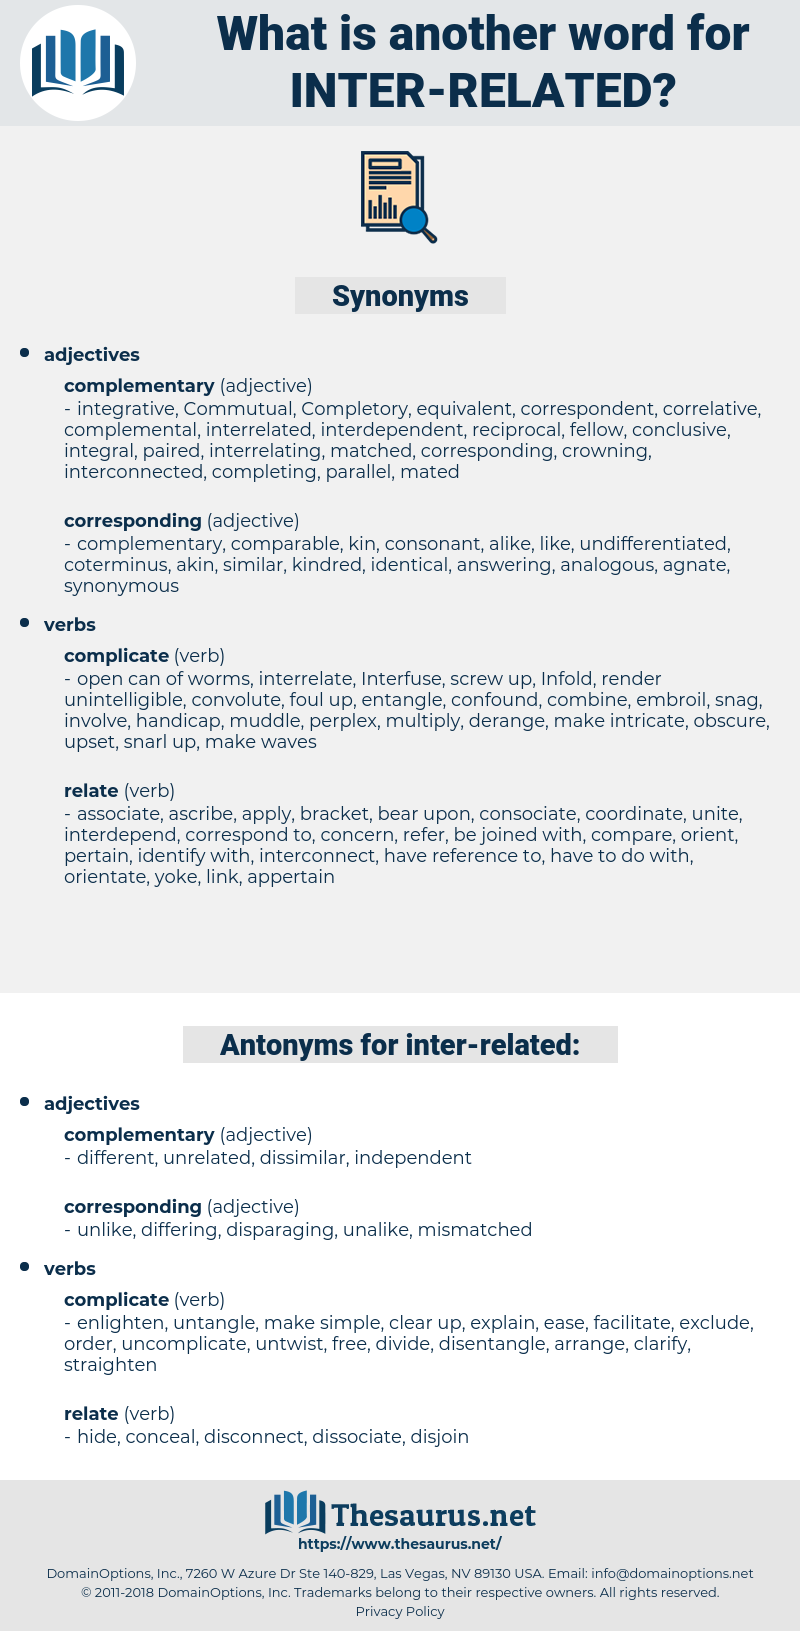 inter-related, synonym inter-related, another word for inter-related, words like inter-related, thesaurus inter-related